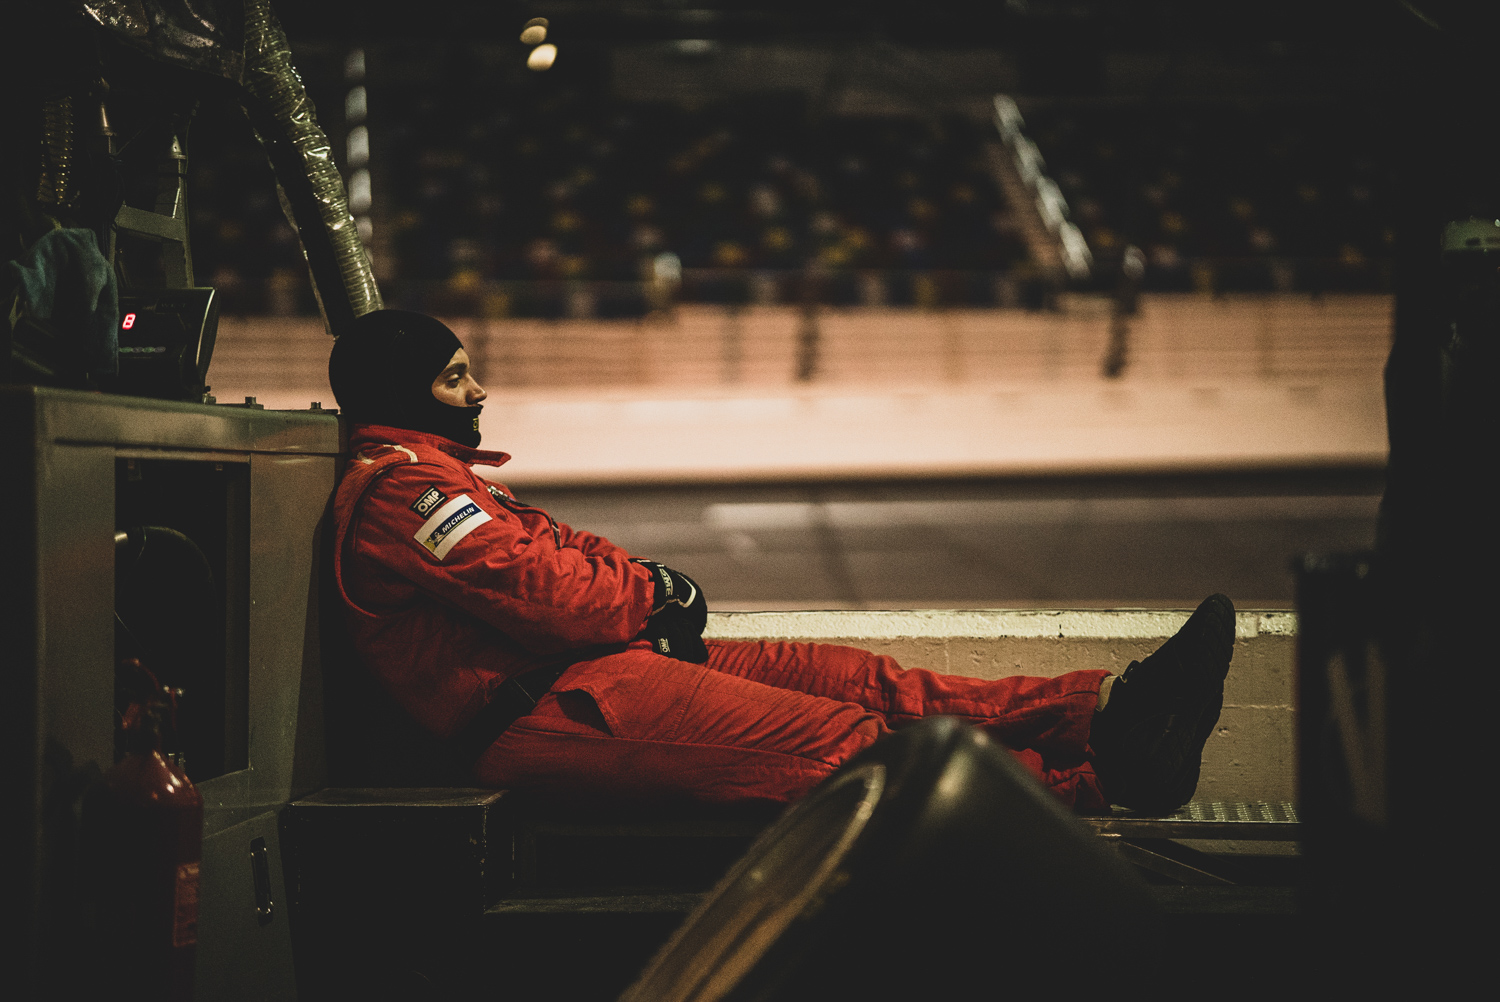 This pit crew member knows it's crucial to find time to rest during the marathon of racing.